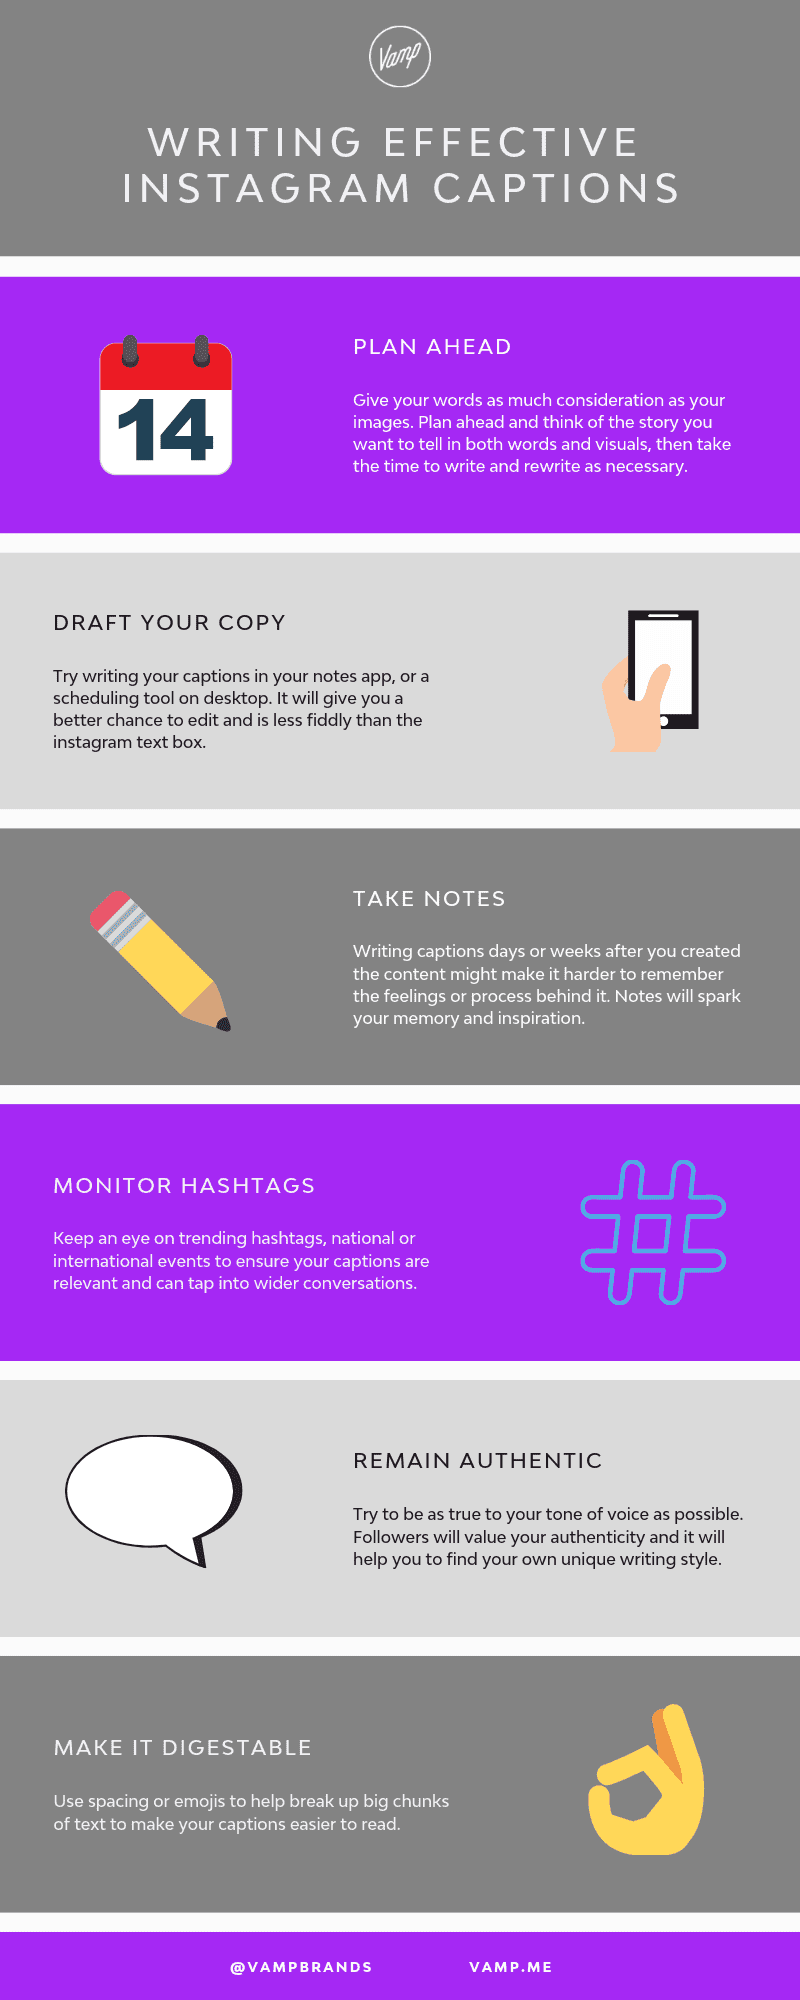 Here's a few more tips for writing effective Instagram captions, in this infographic.